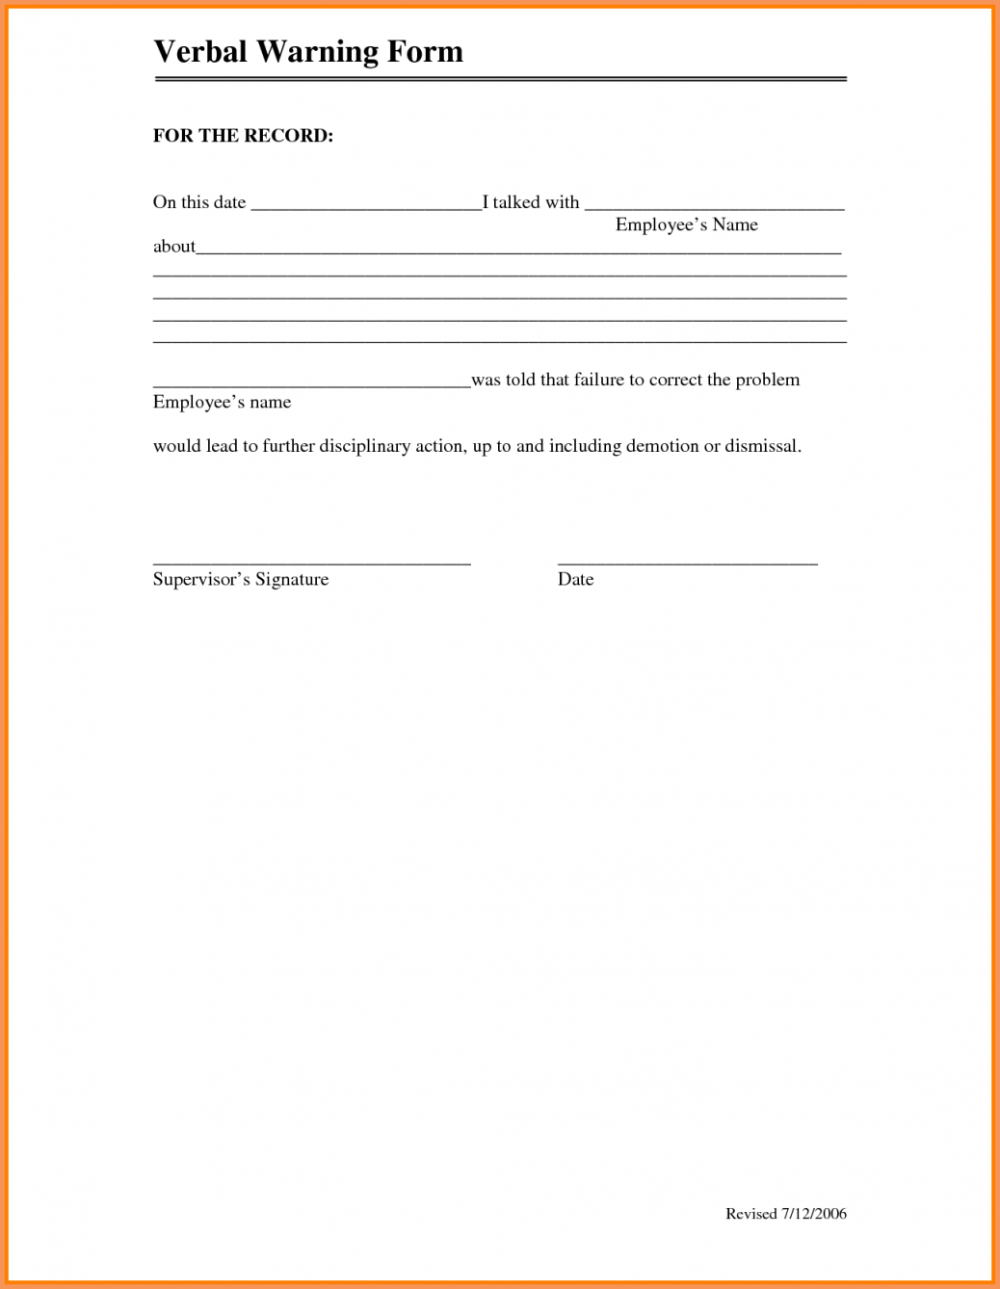 Employee Verbal Warning Form For Verbal Warning Form Form Templates Writing